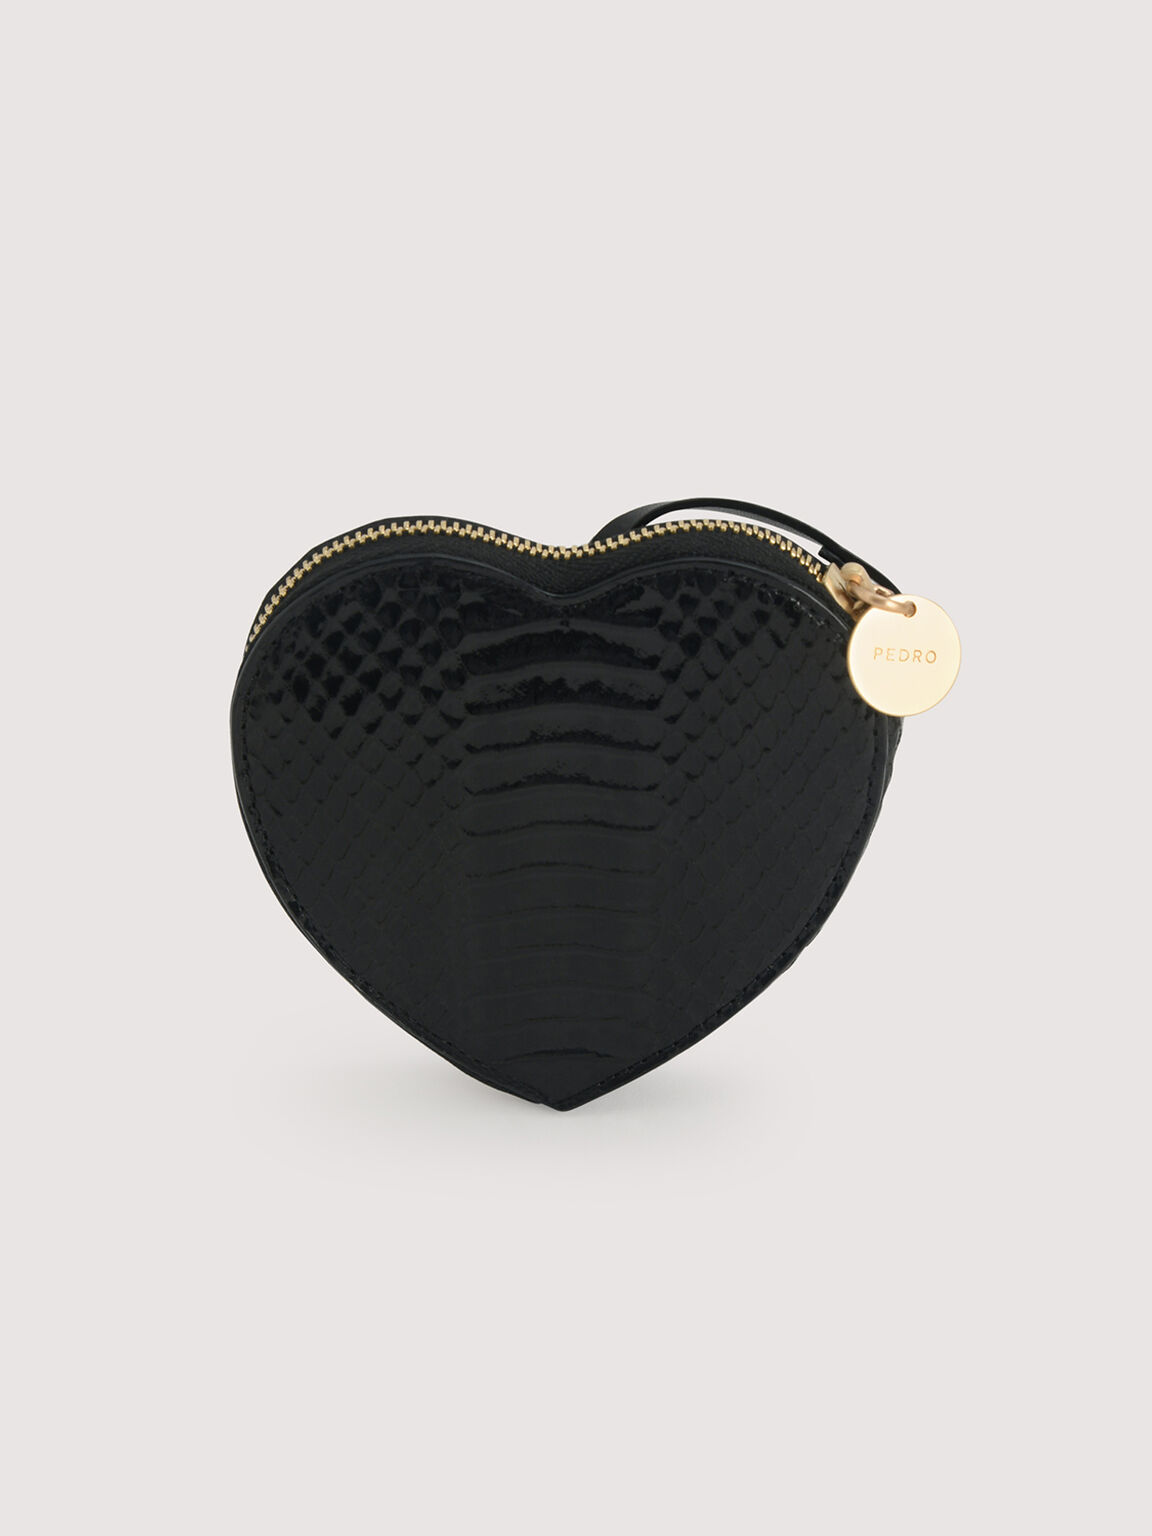 Snake-Effect Heart Coinpouch, Black, hi-res